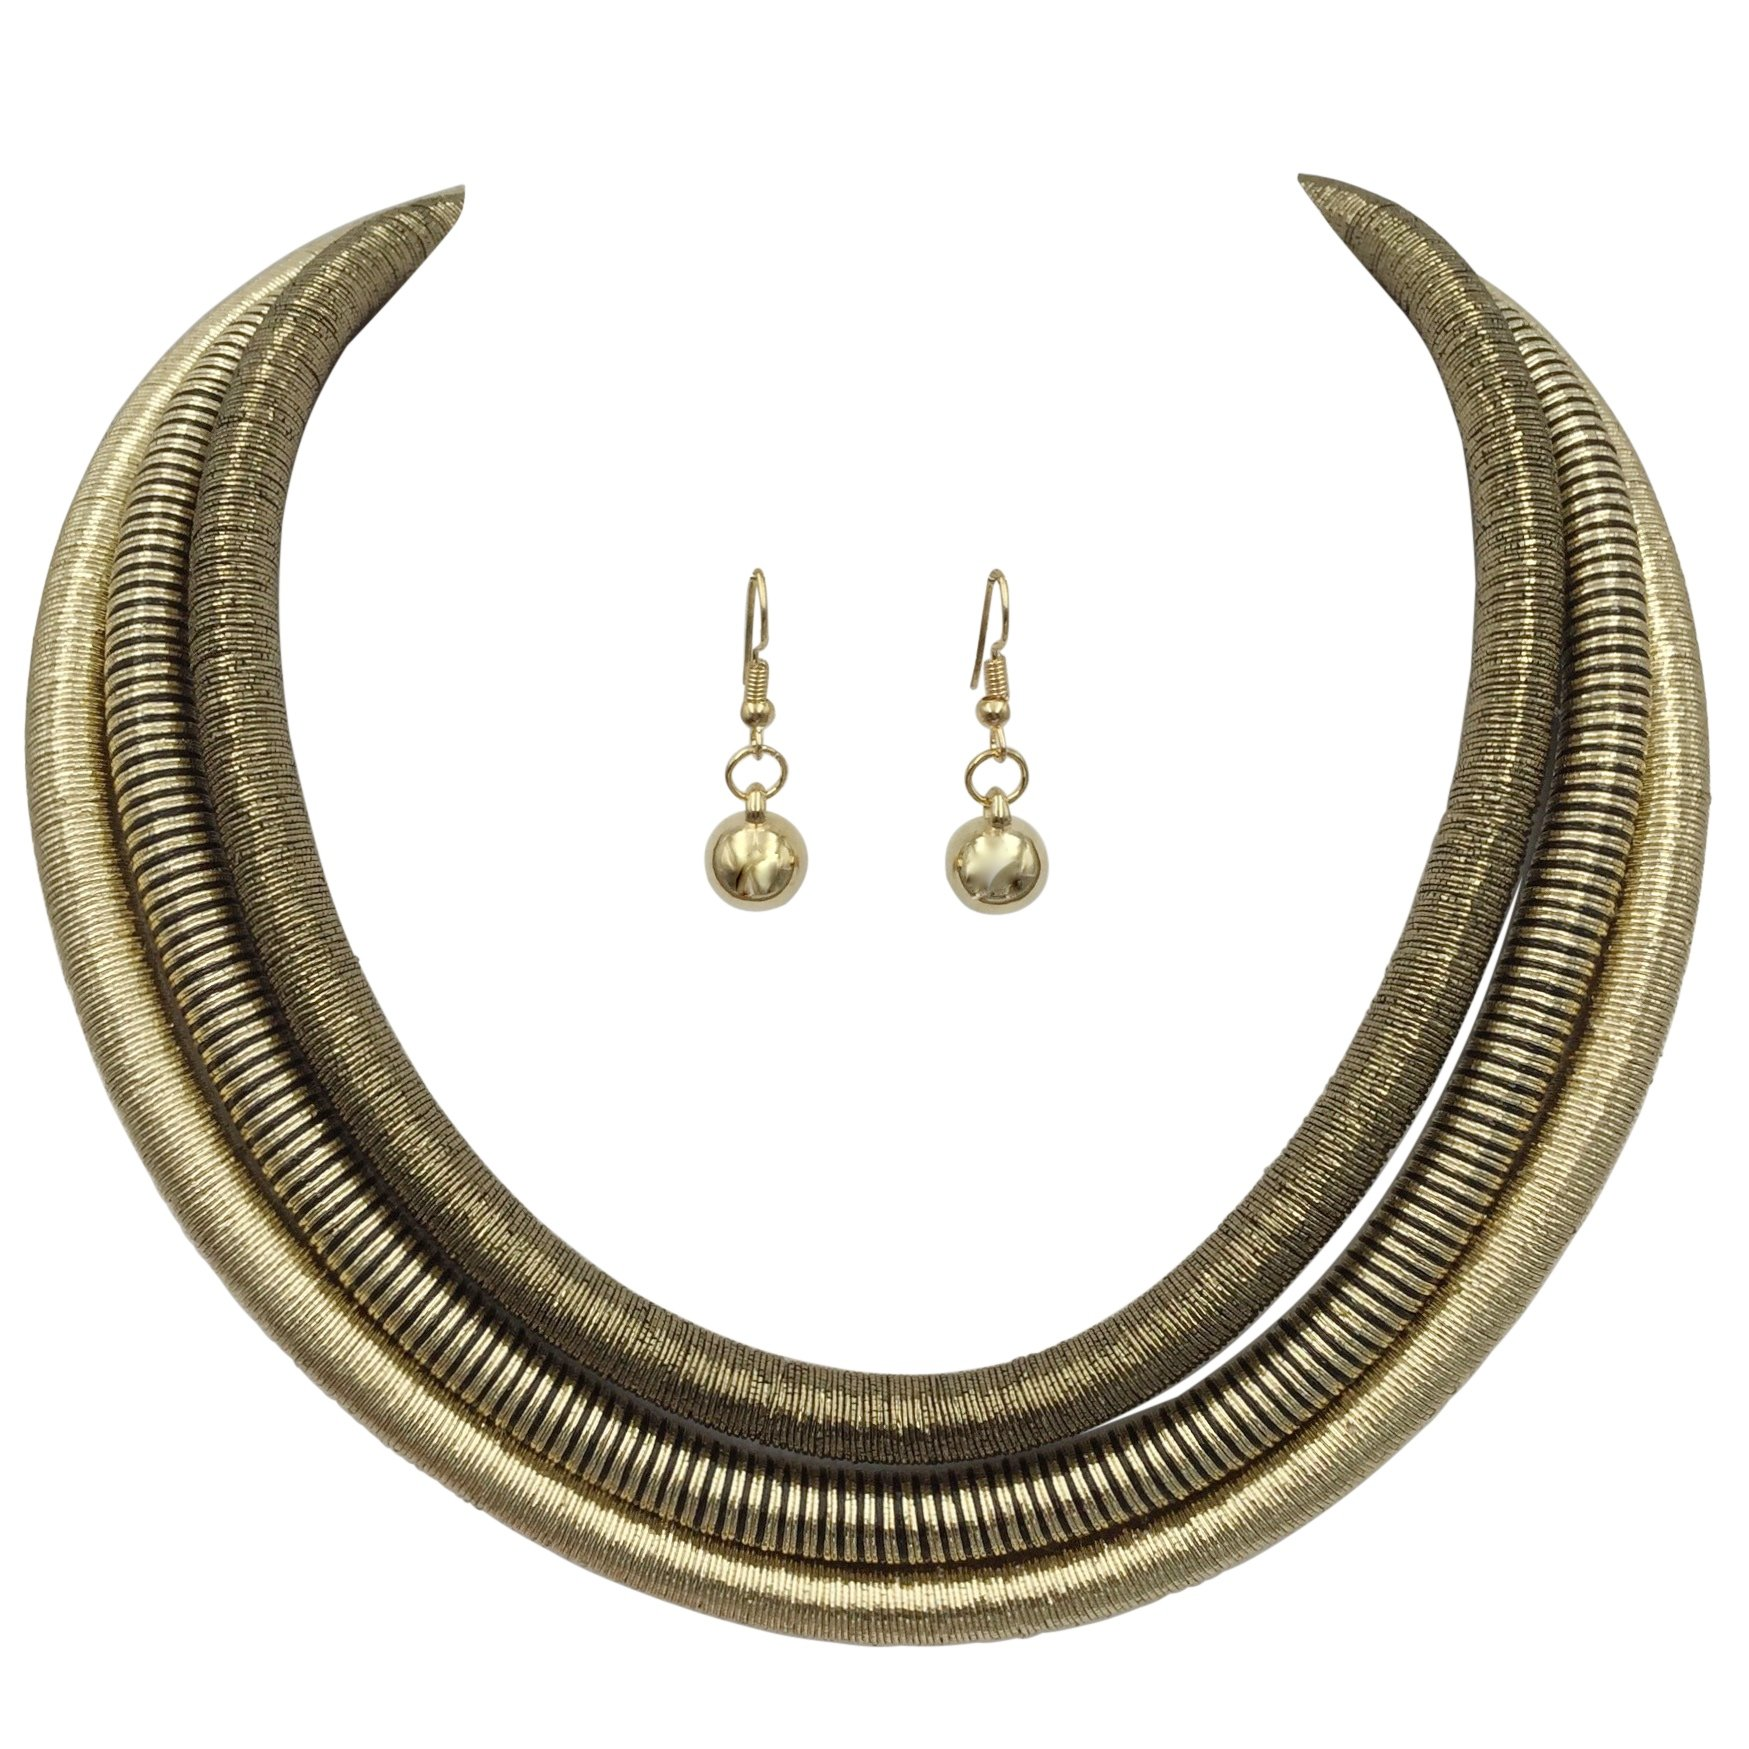 Multi Row Layered Metallic Thread Statement Necklace and Dangle Earring Set (Gold Tones with Black)